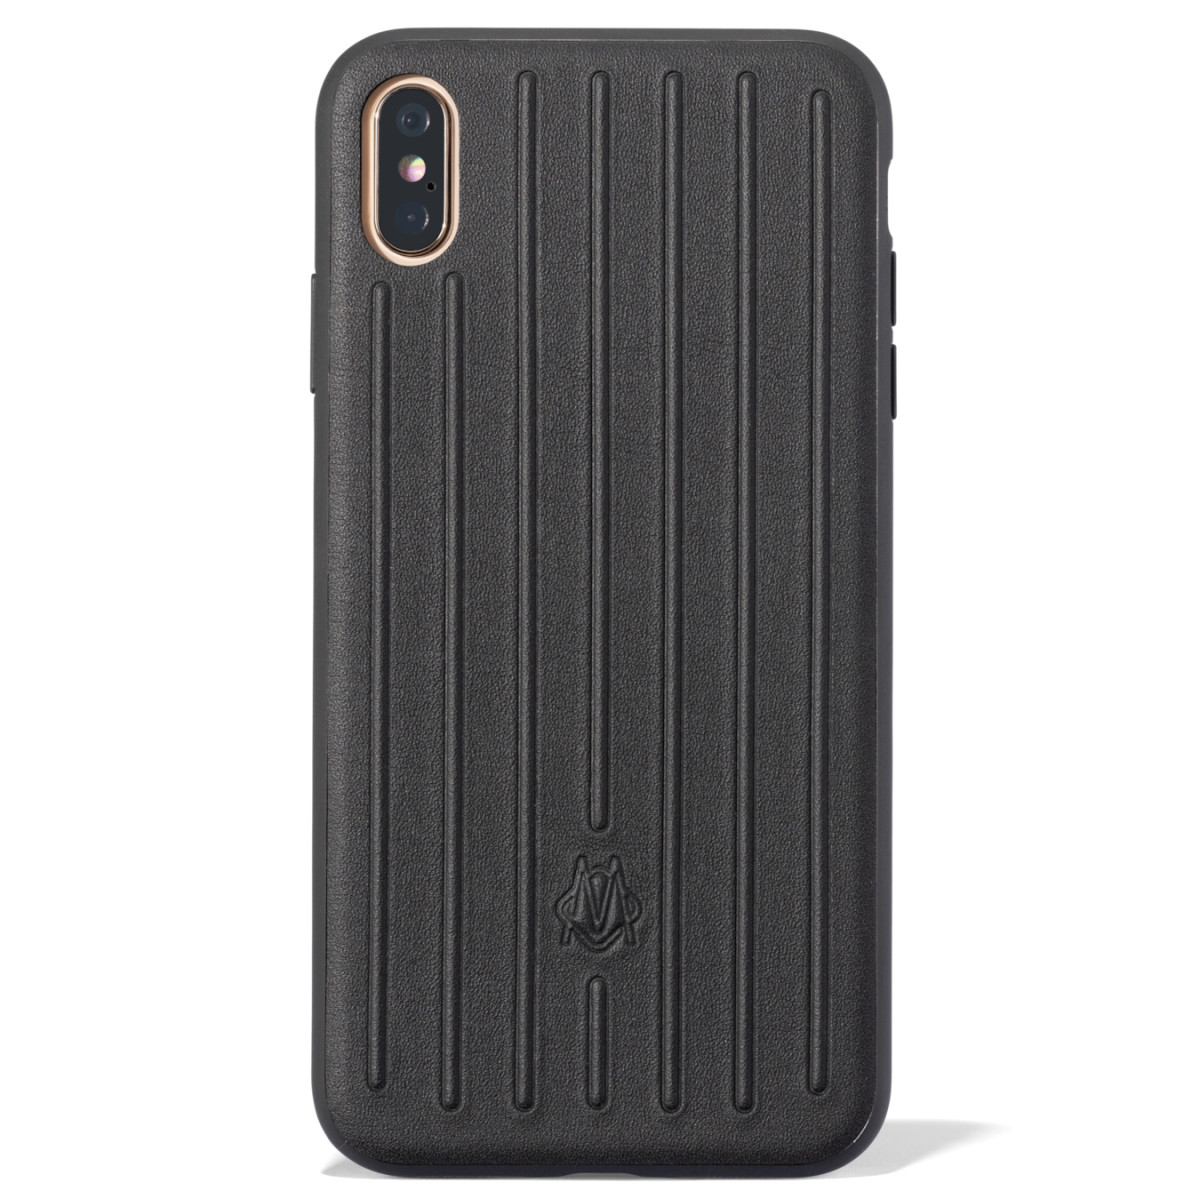 Rimowa Leather iPhone Case